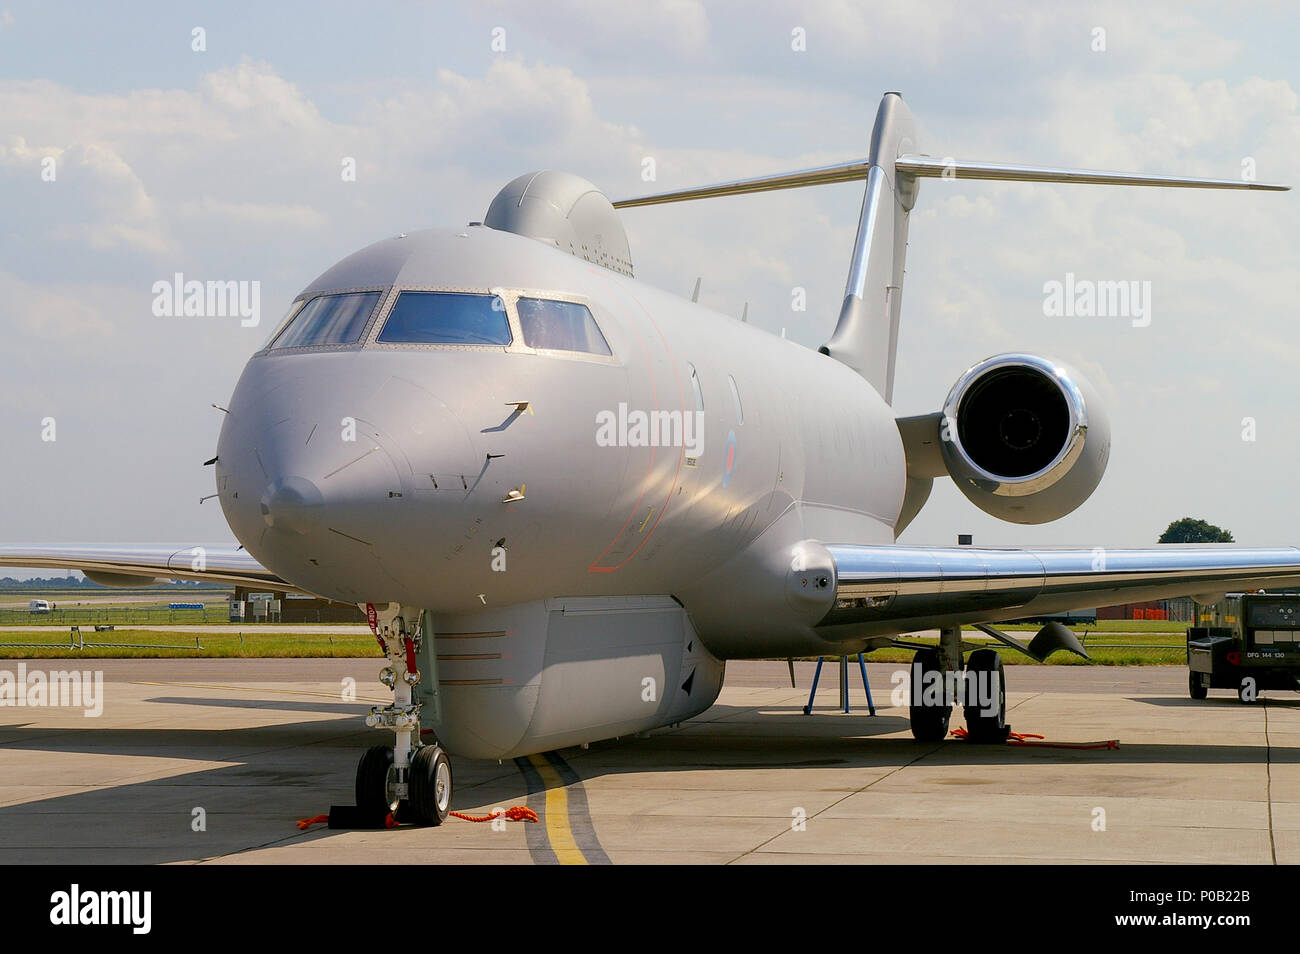 Royal Air Force RAF R1 Sentinel ZJ692, an airborne battlefield and ground surveillance aircraft. Raytheon Sentinel based on Bombardier Global Express - Stock Image